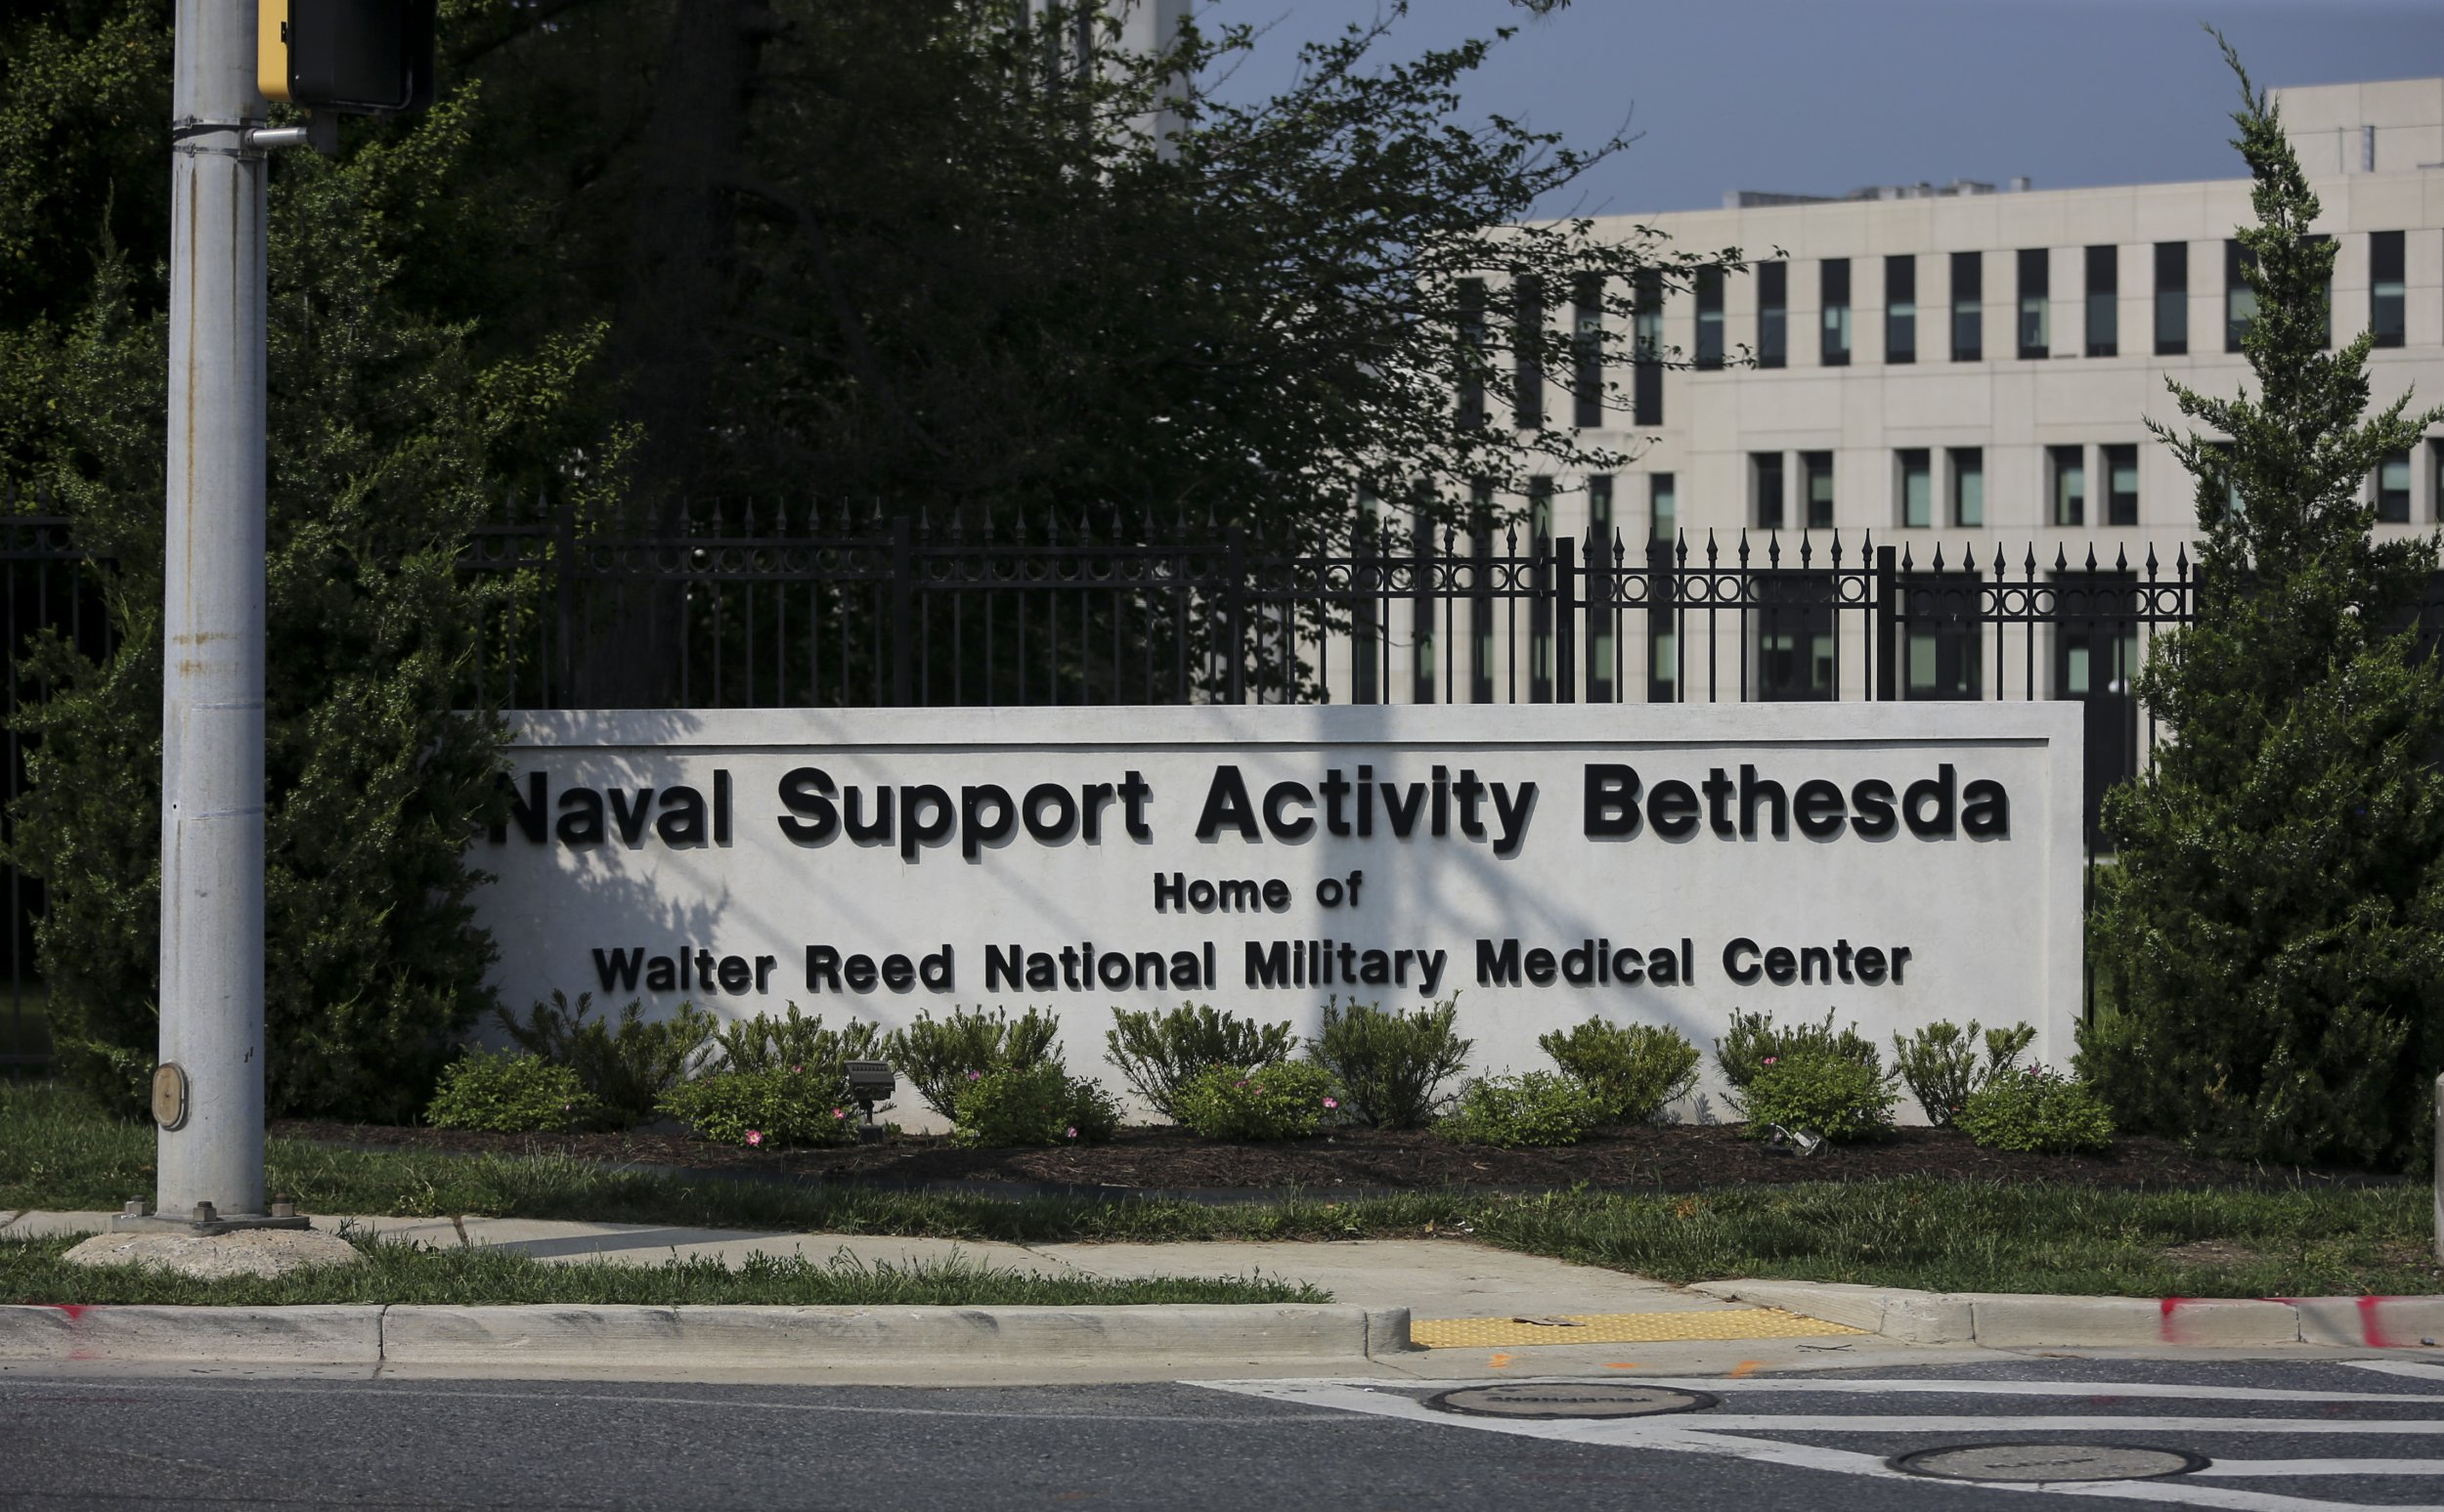 walter reed national military medical center shooter